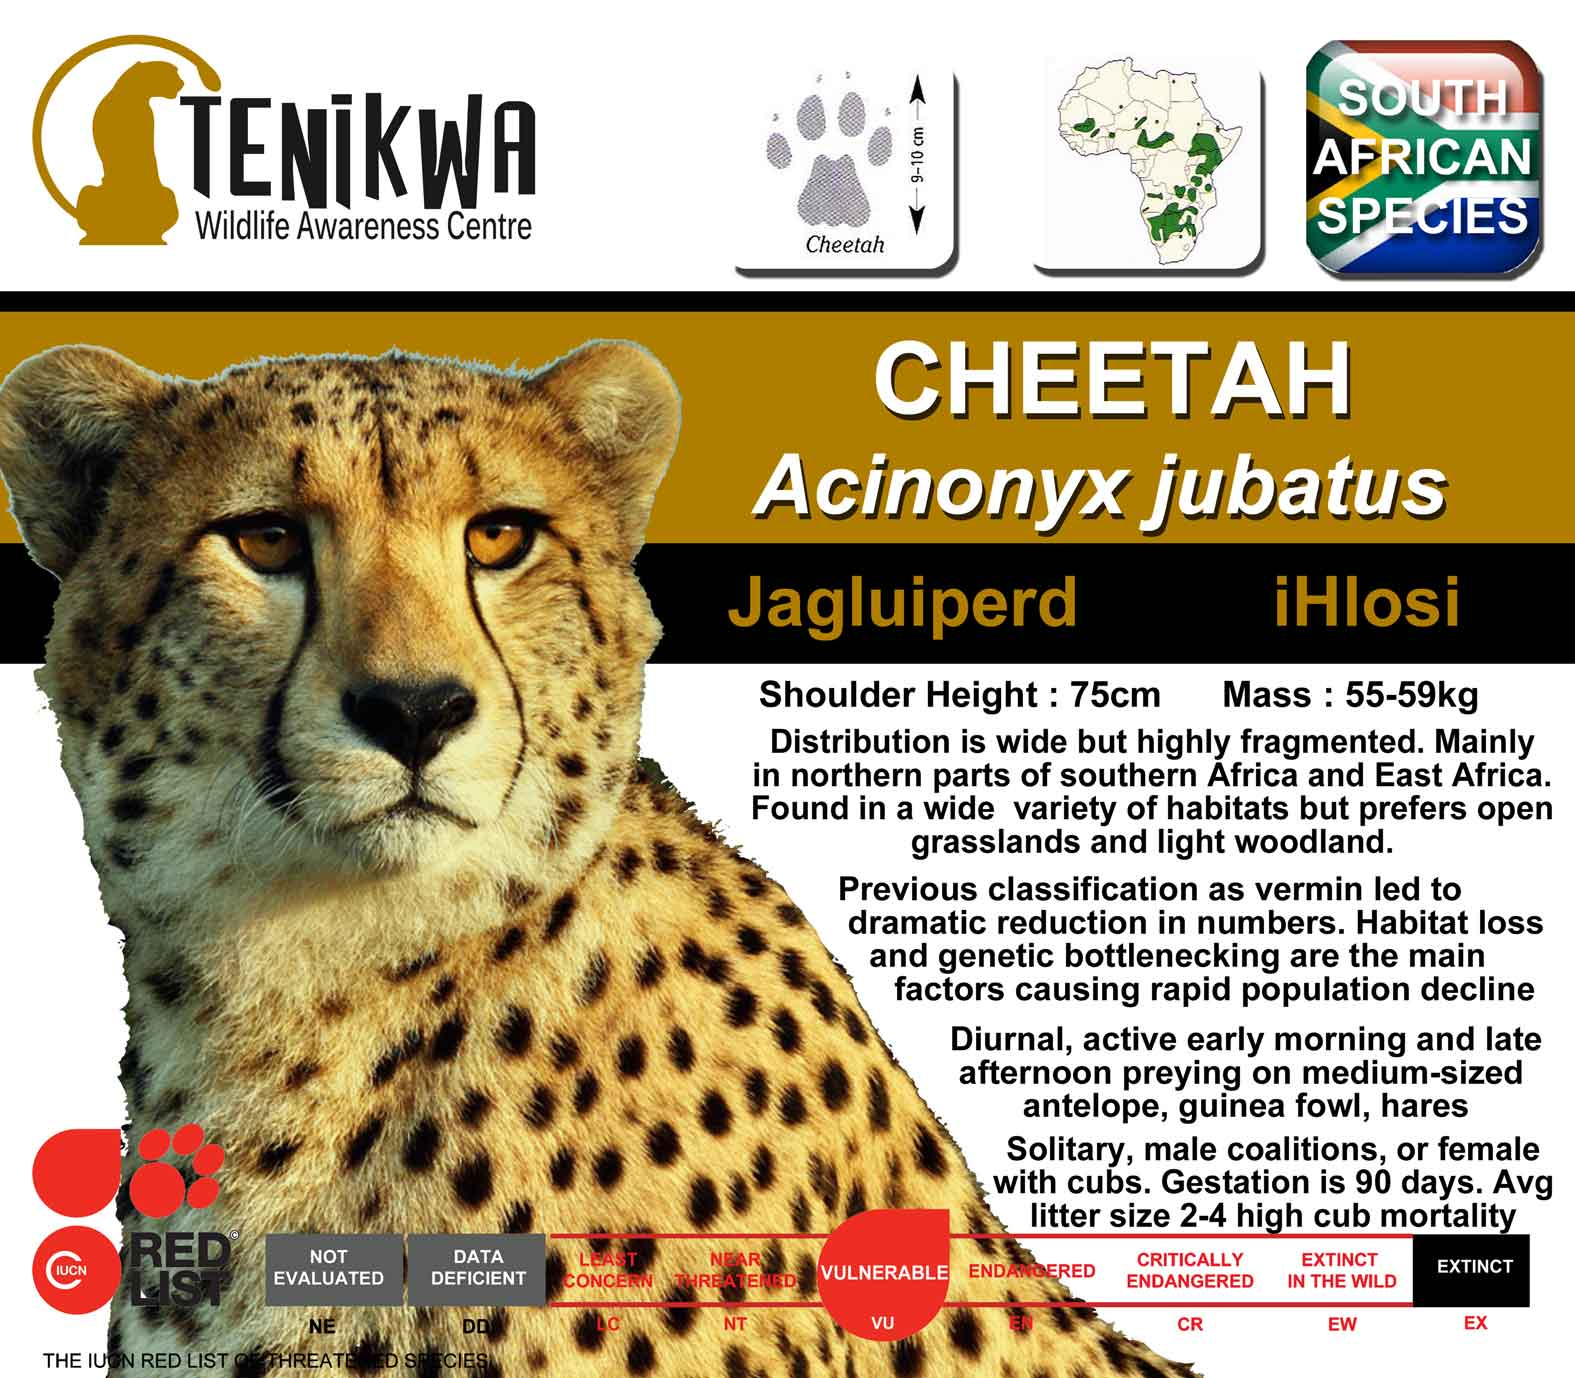 cheetah endangered essay cheetah fact sheet tenikwa wildlife and rehabilitation centre